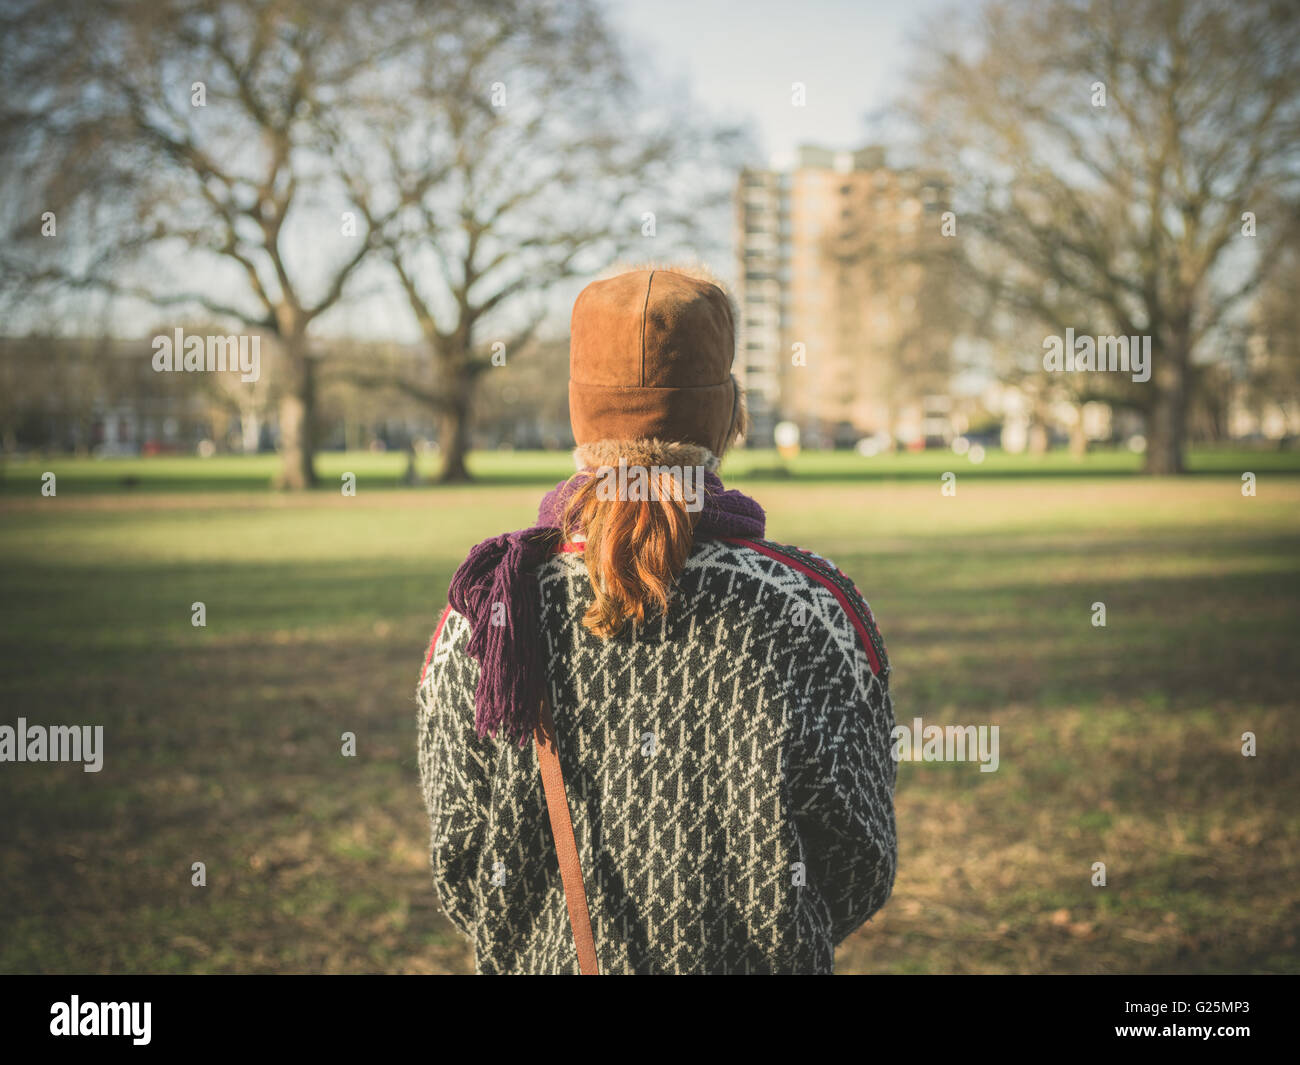 A young woman is walking in the park on a winter's day - Stock Image